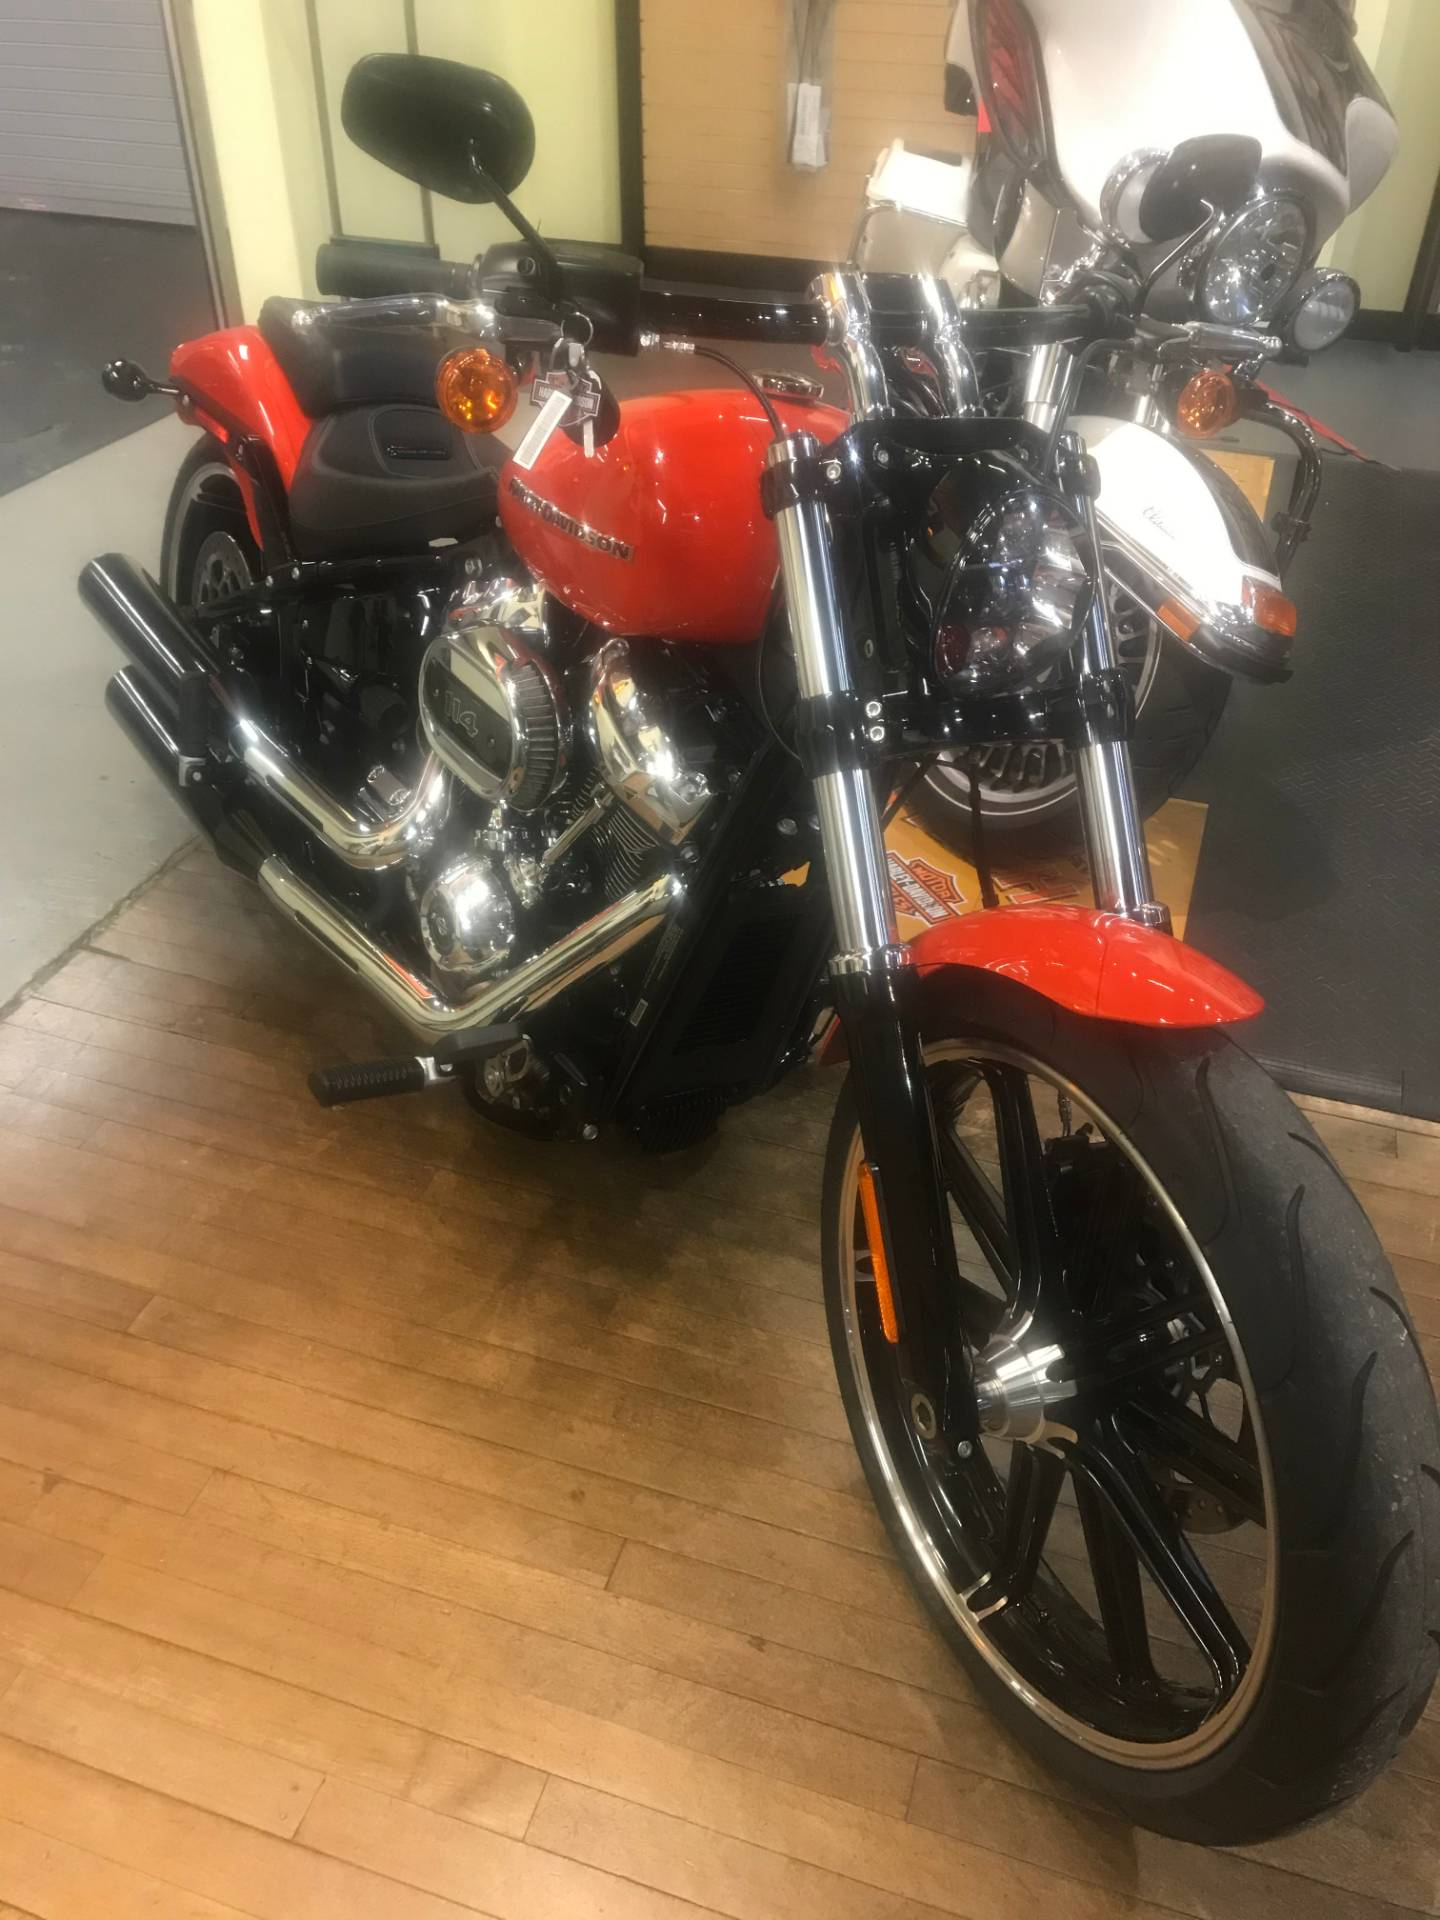 2020 Harley-Davidson BREAKOUT in Lakewood, New Jersey - Photo 3